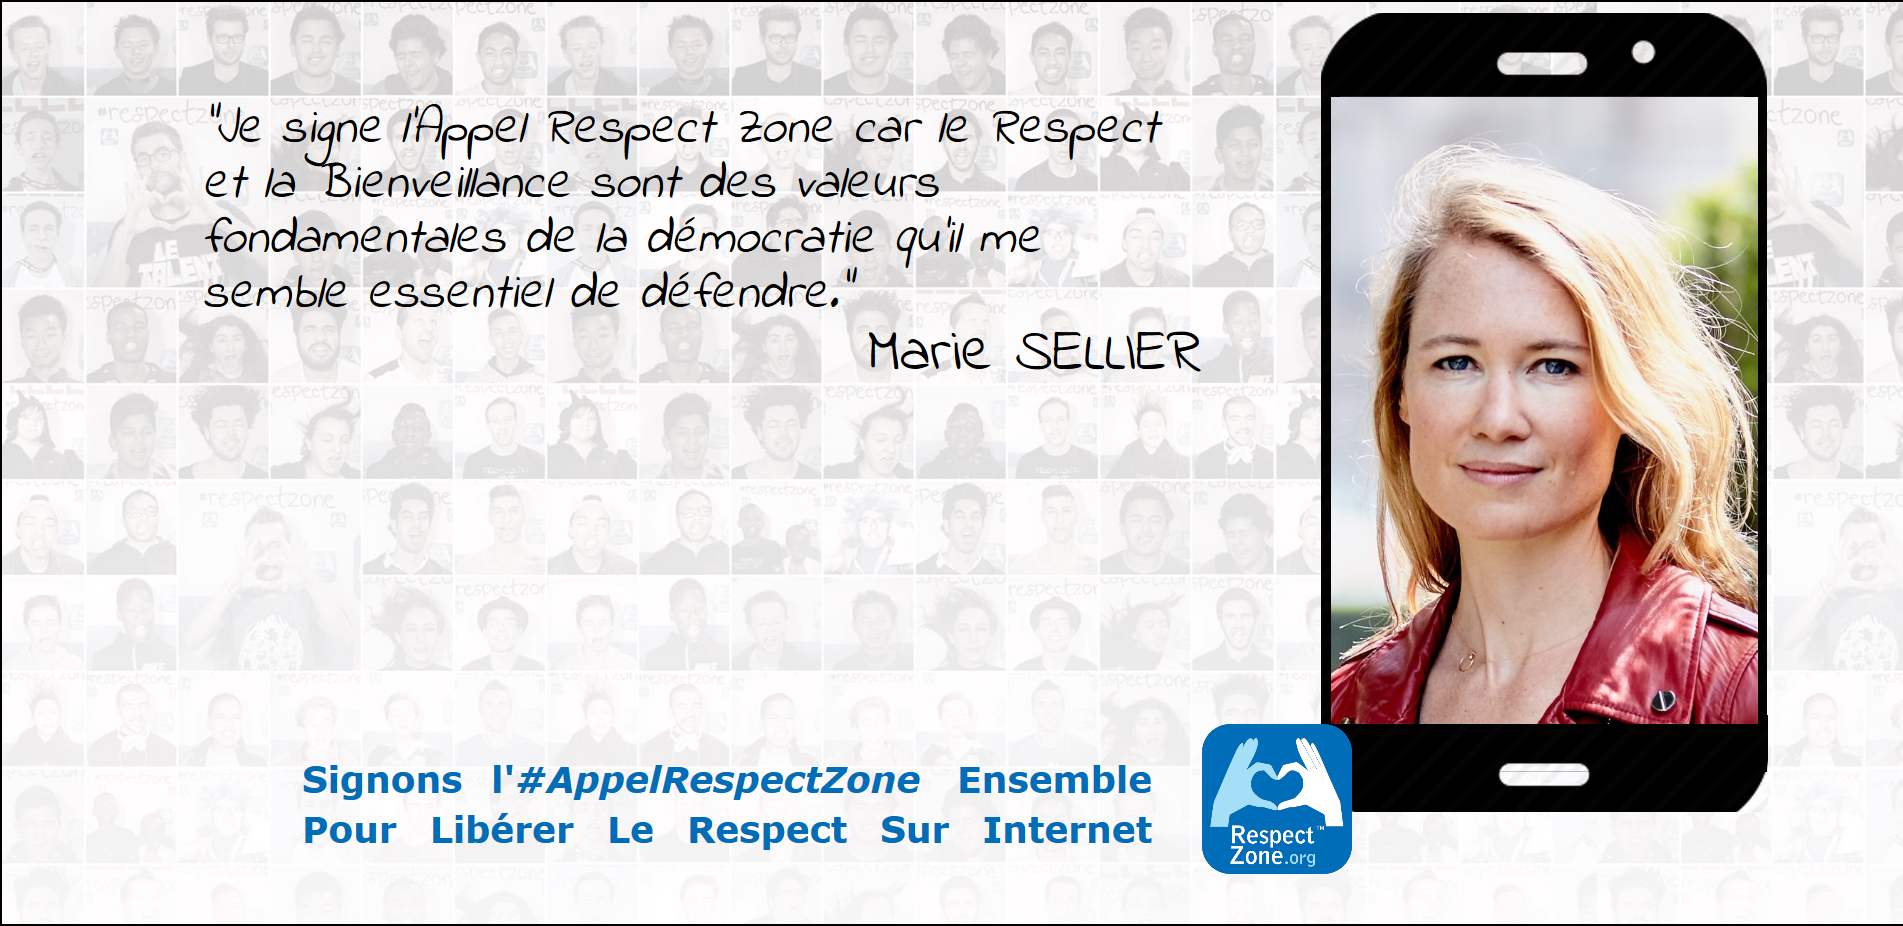 Marie SELLIER